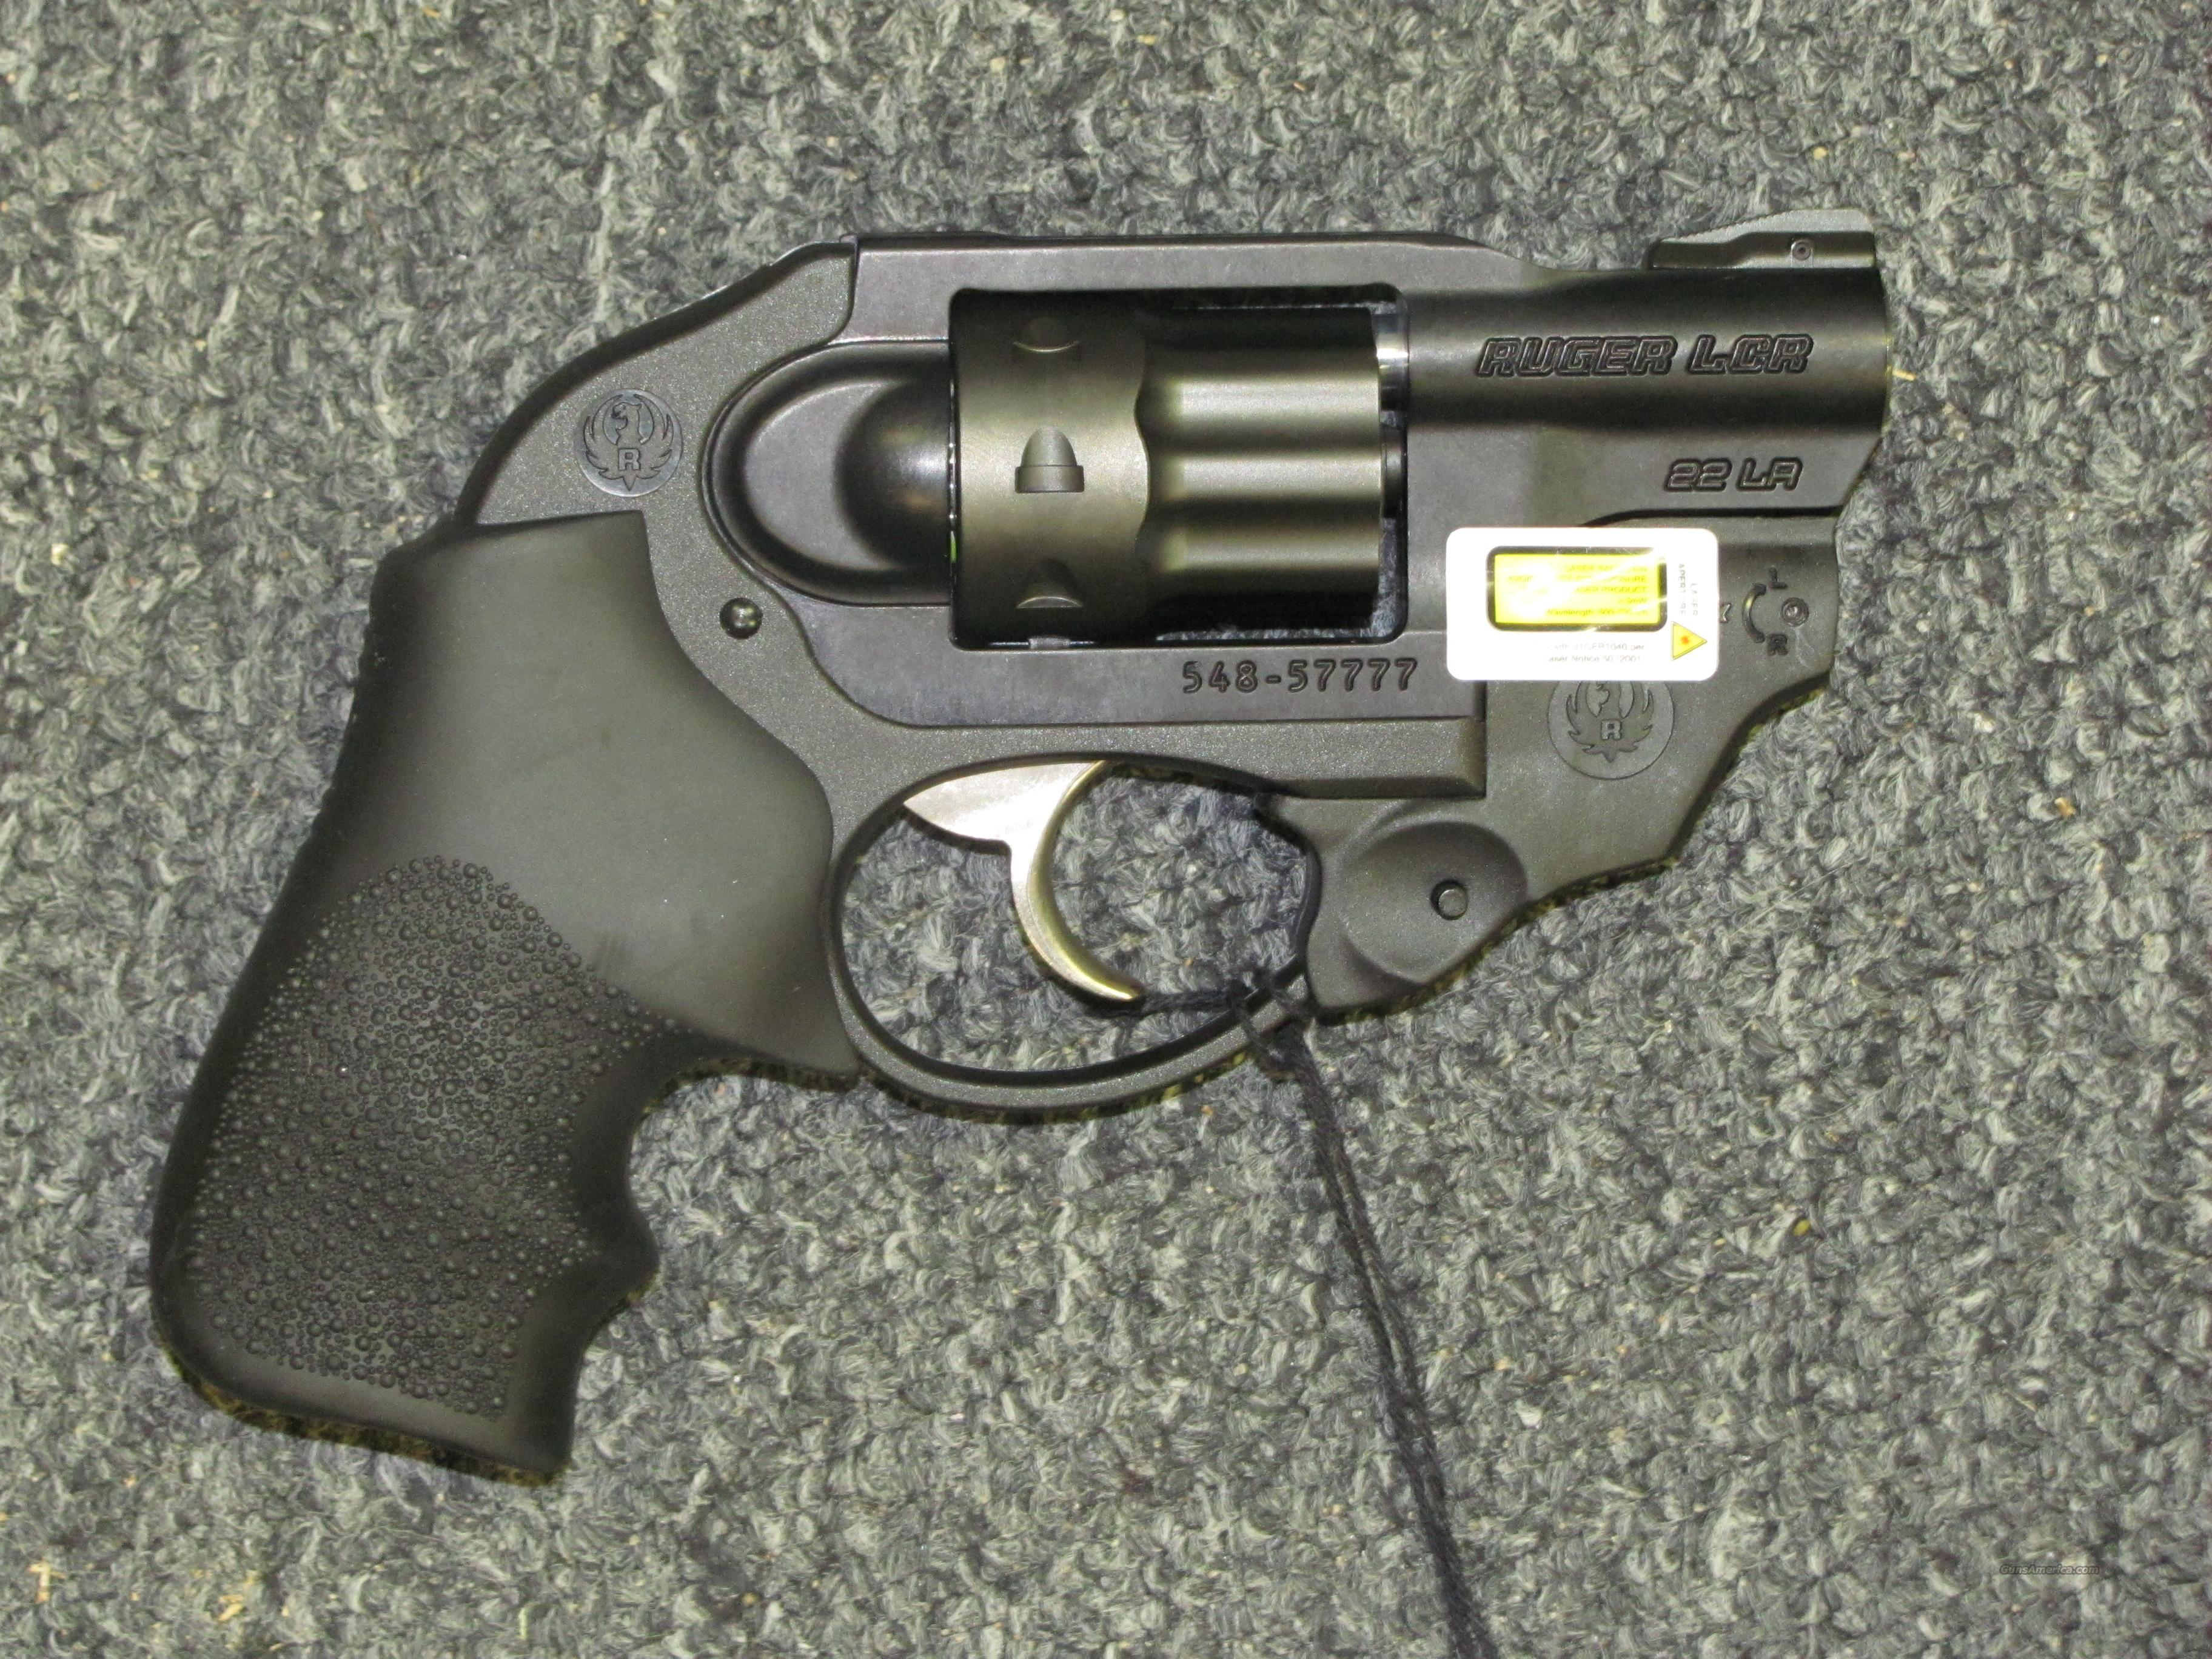 LCR w/Laser Max (.22 lr)  Guns > Pistols > Ruger Double Action Revolver > LCR